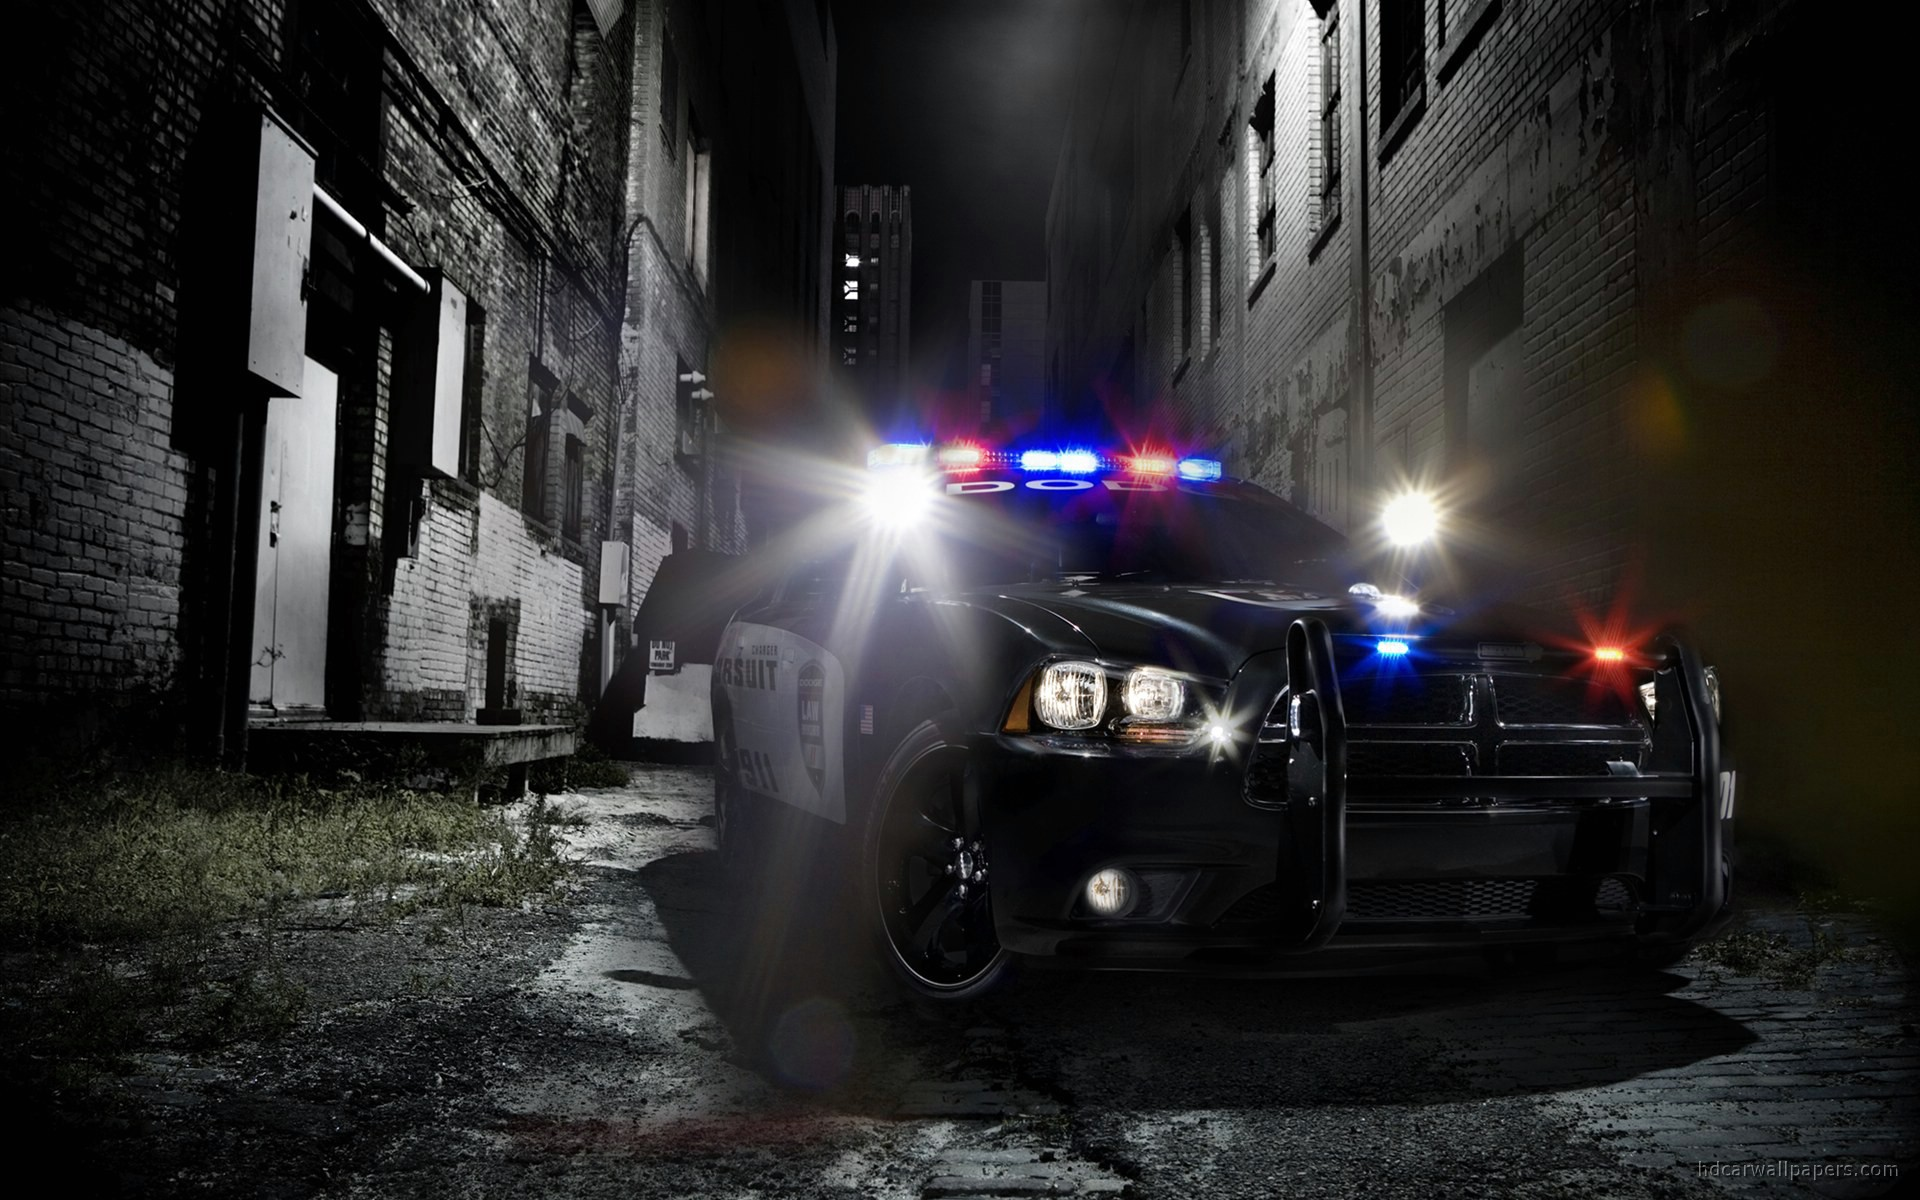 2011 Dodge Charger Pursuit Wallpaper   HD Car Wallpapers   ID #1629